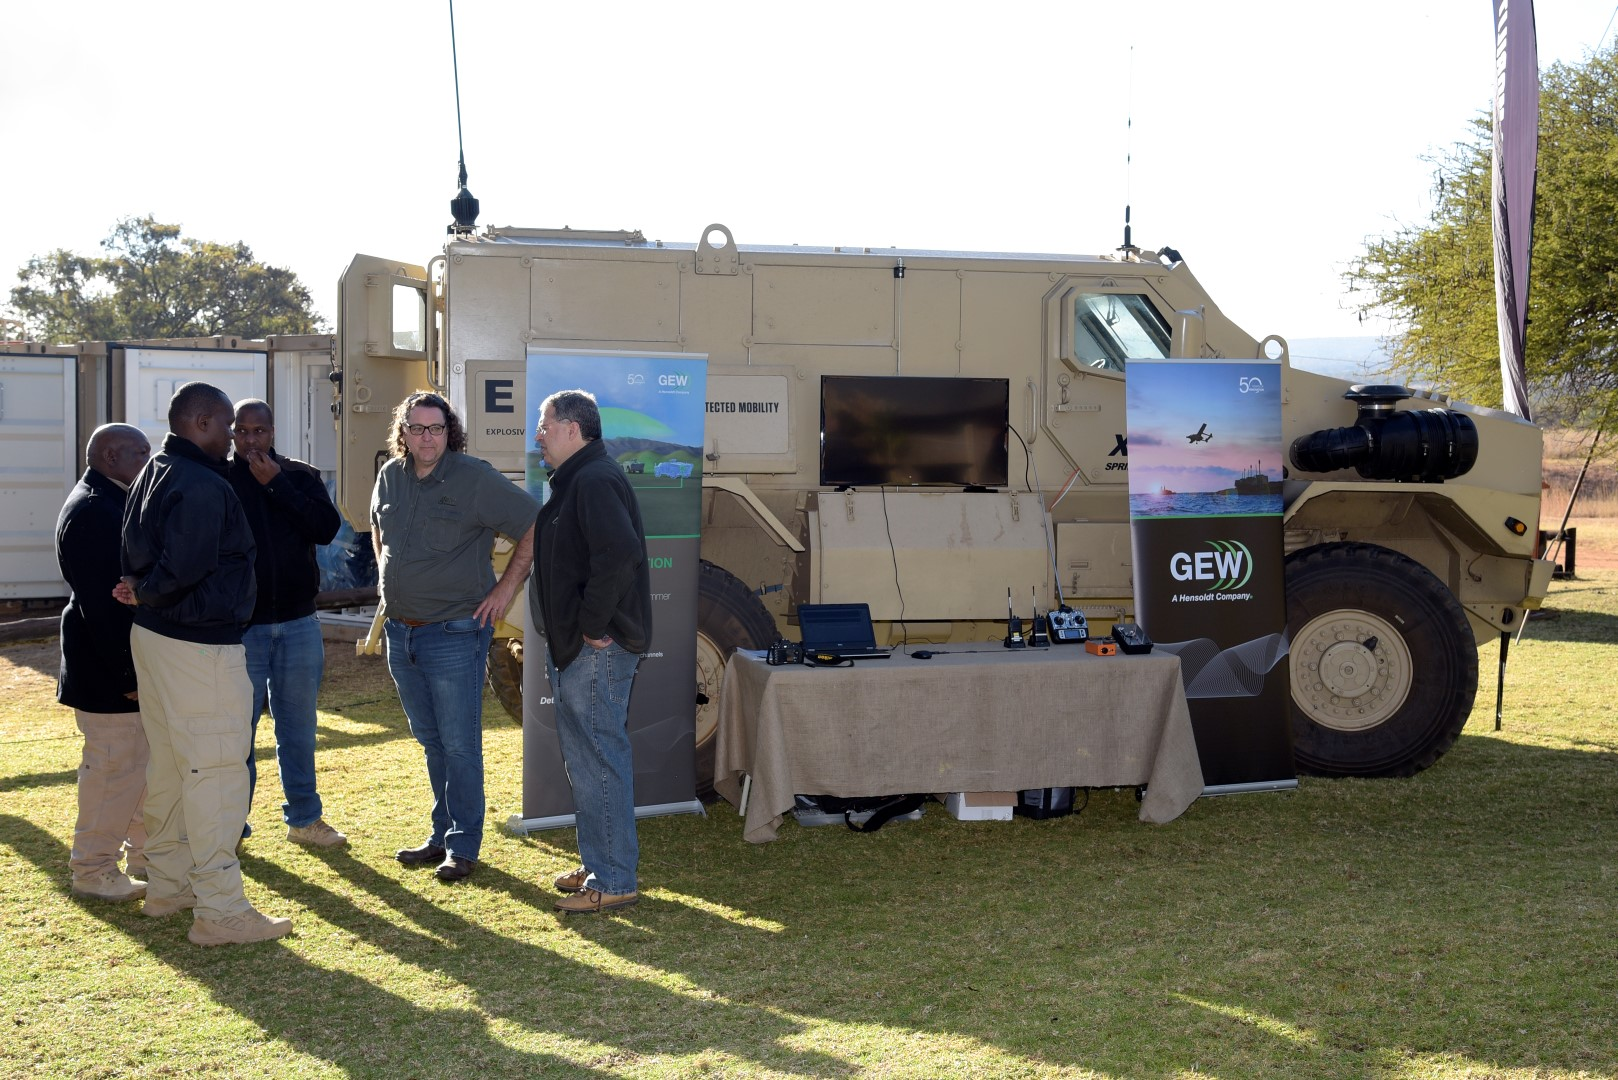 GEW demonstrates GMJ9 force-protection jammer